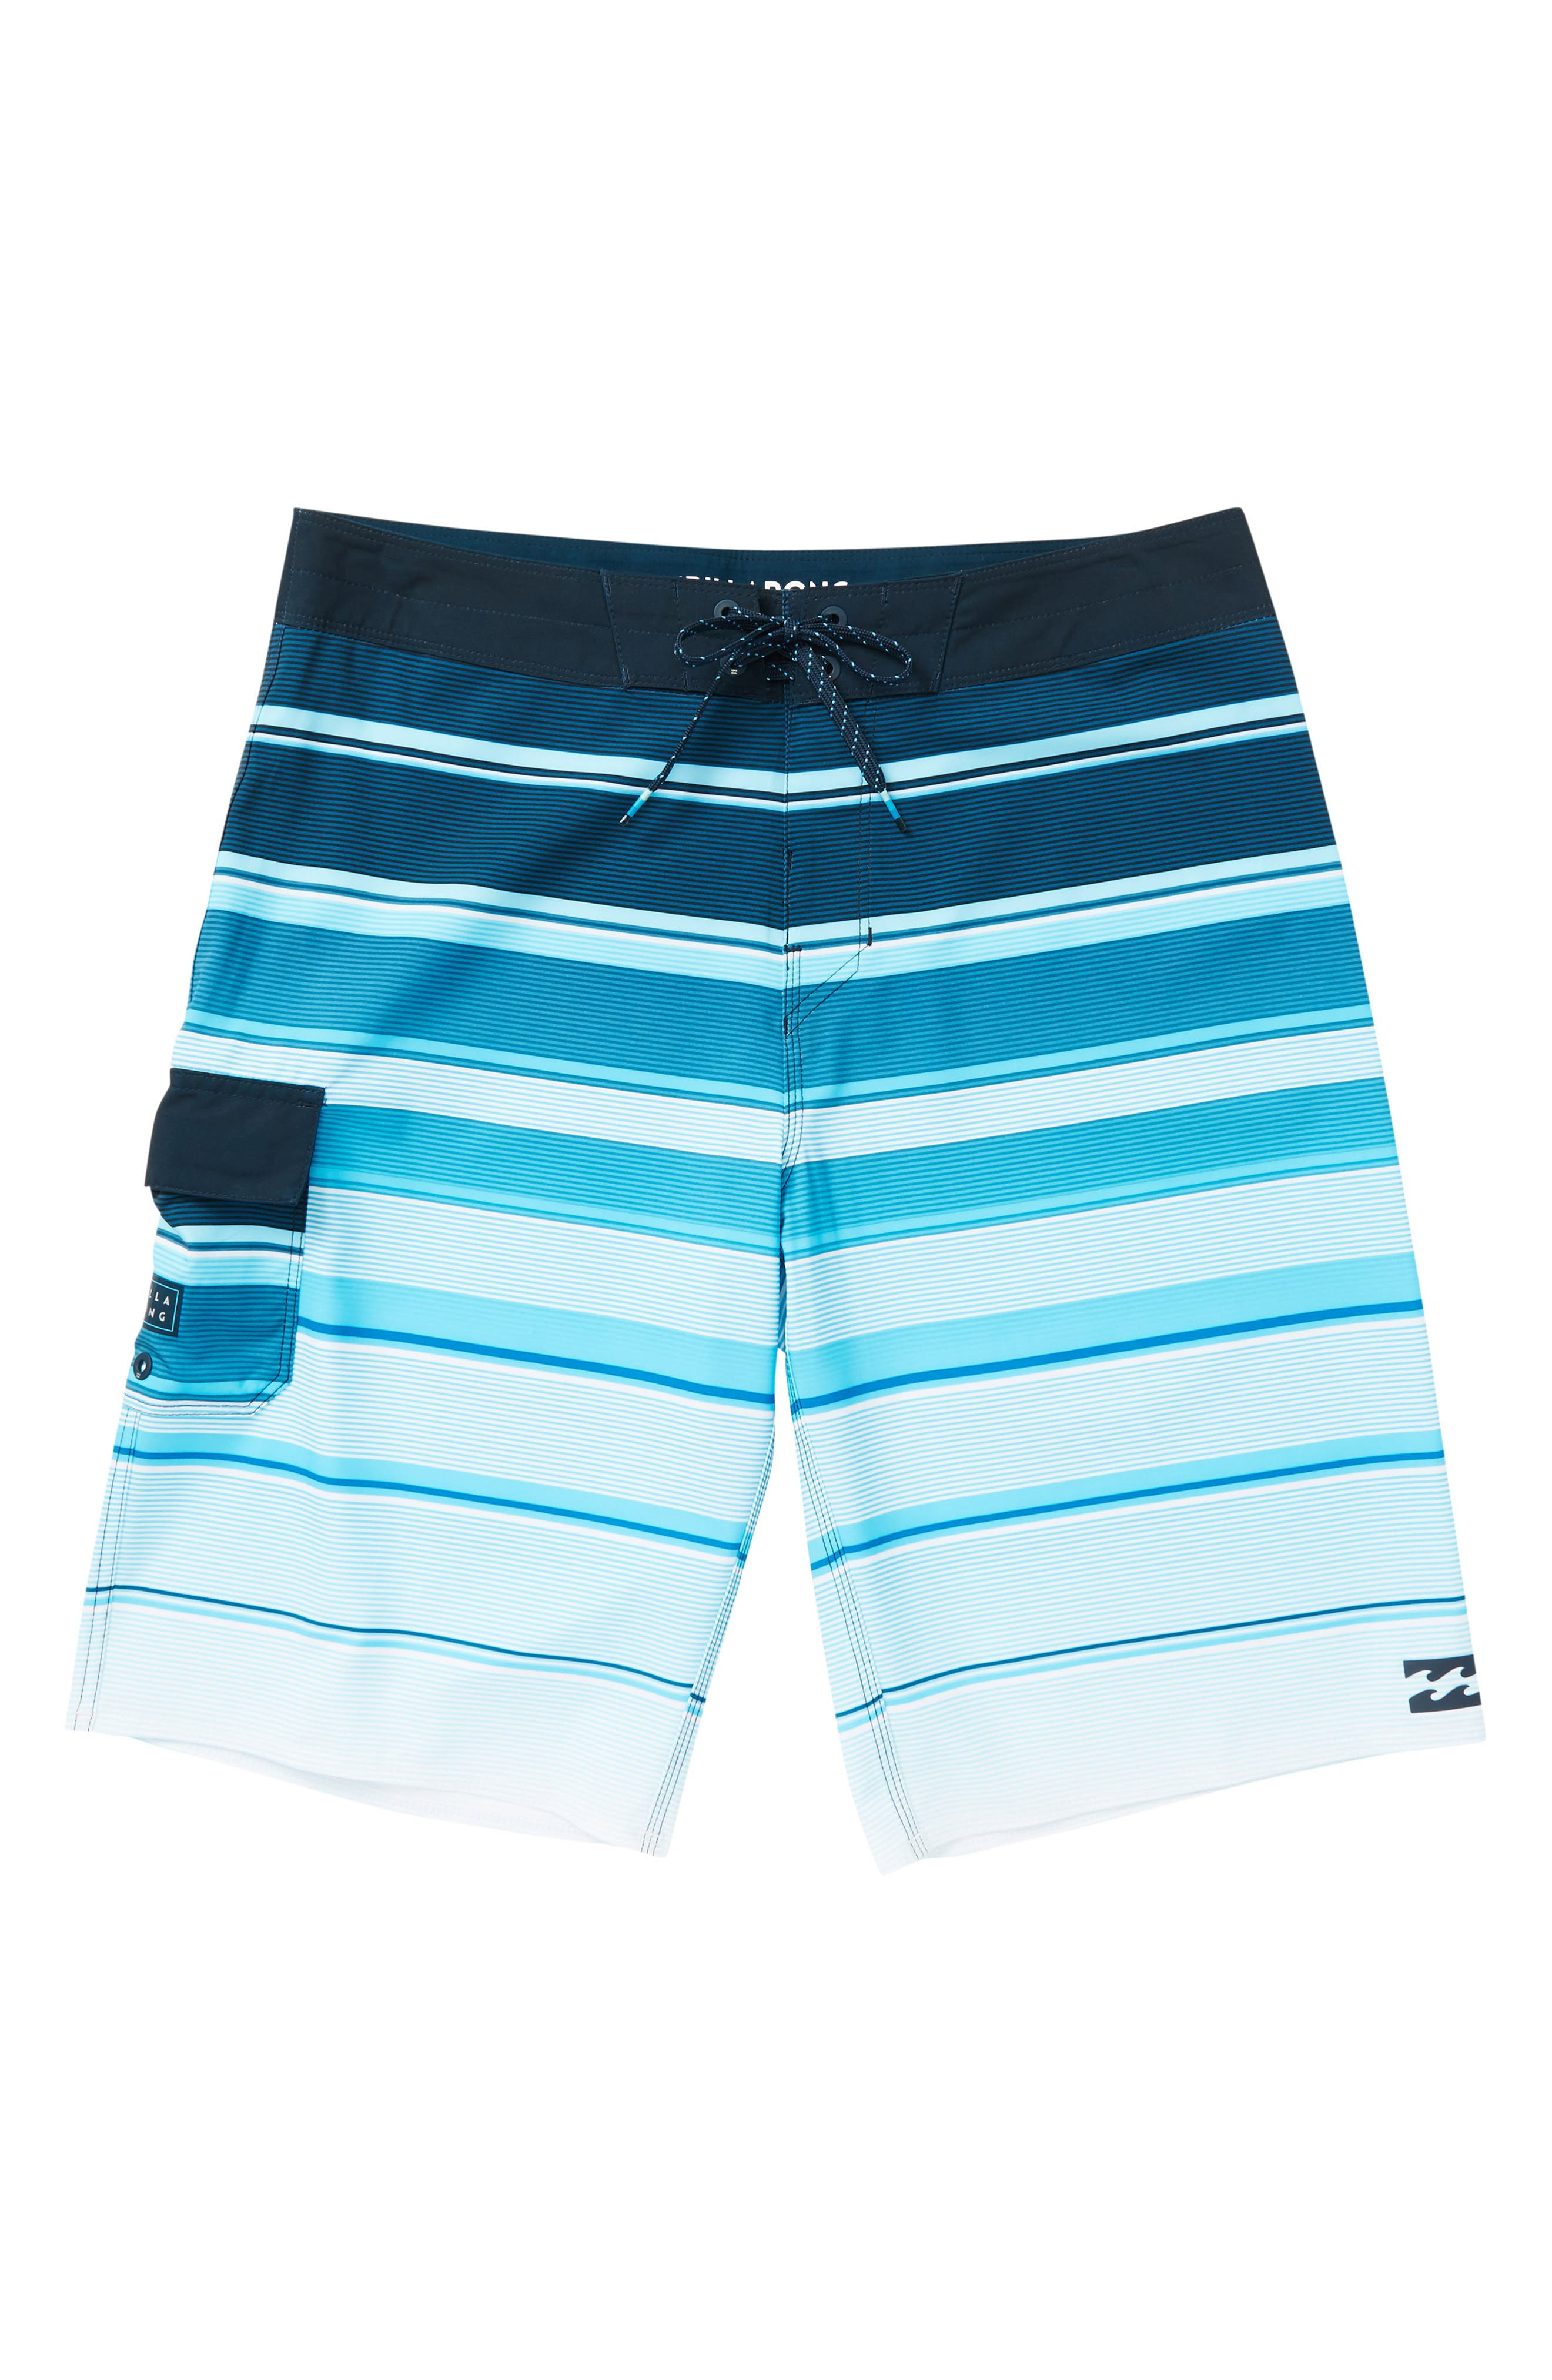 All Day X Stripe Board Shorts,                         Main,                         color, NAVY